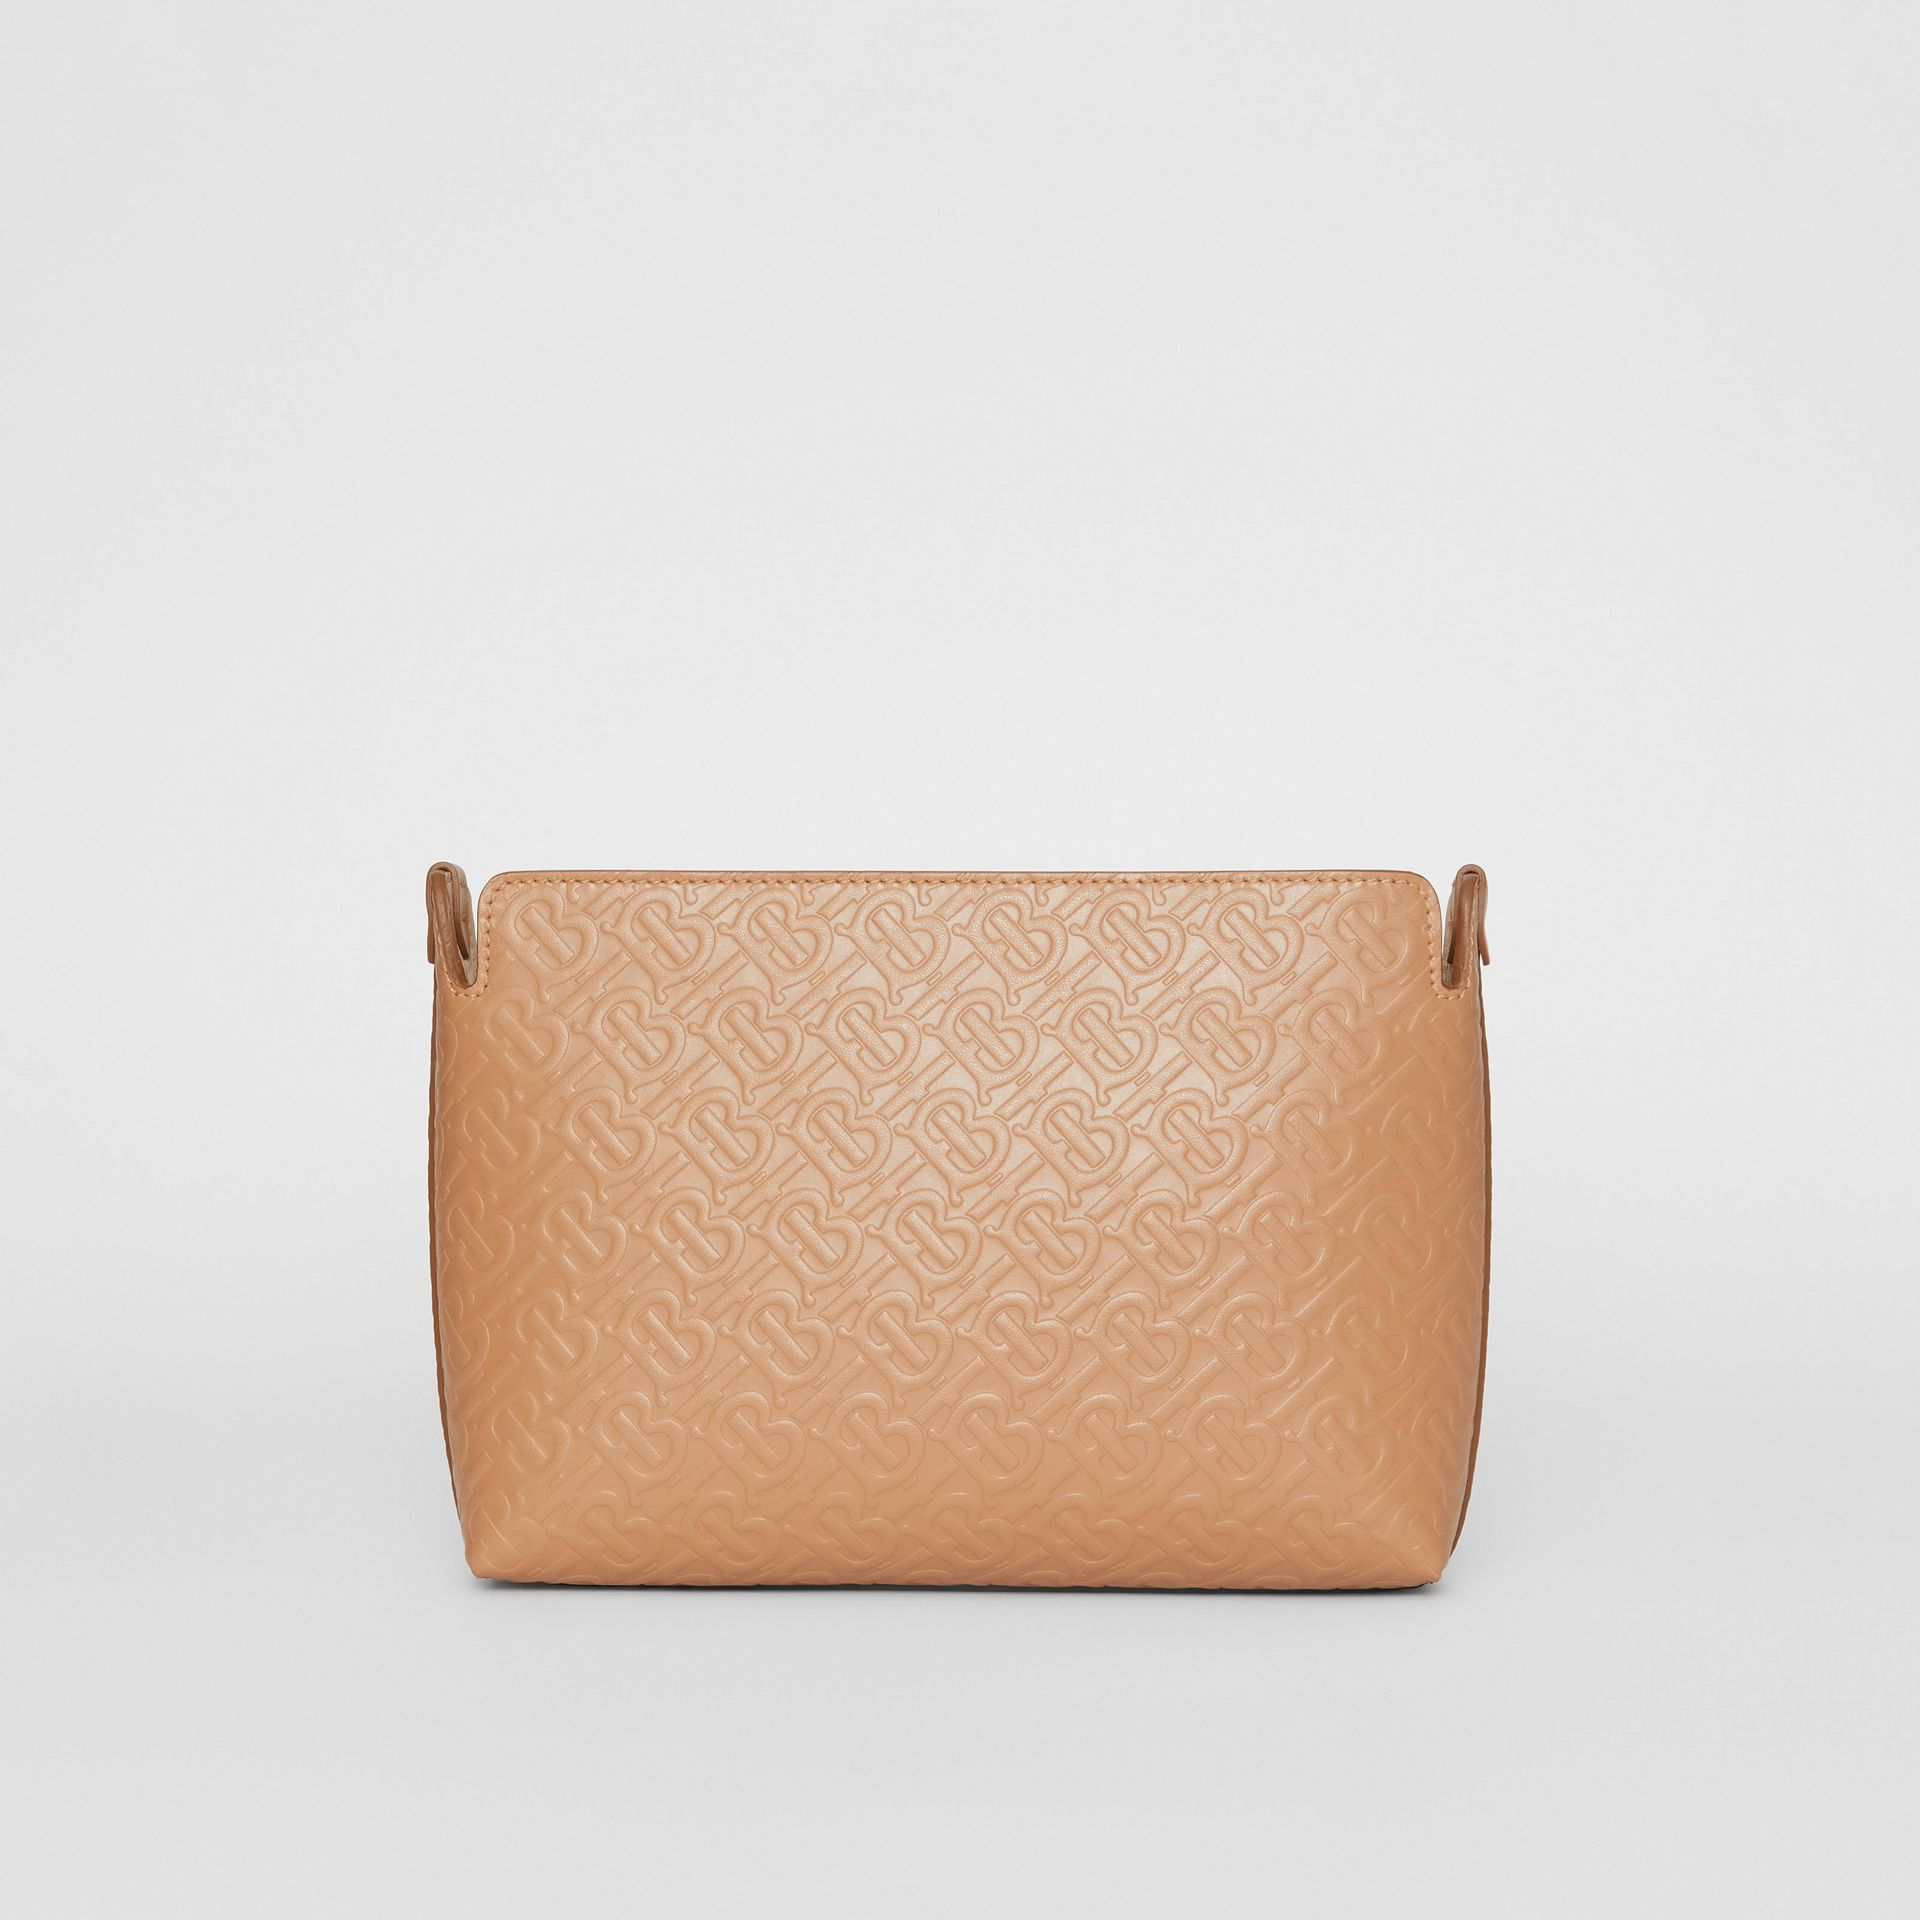 Medium Monogram Leather Clutch in Light Camel - Women | Burberry Singapore - gallery image 6